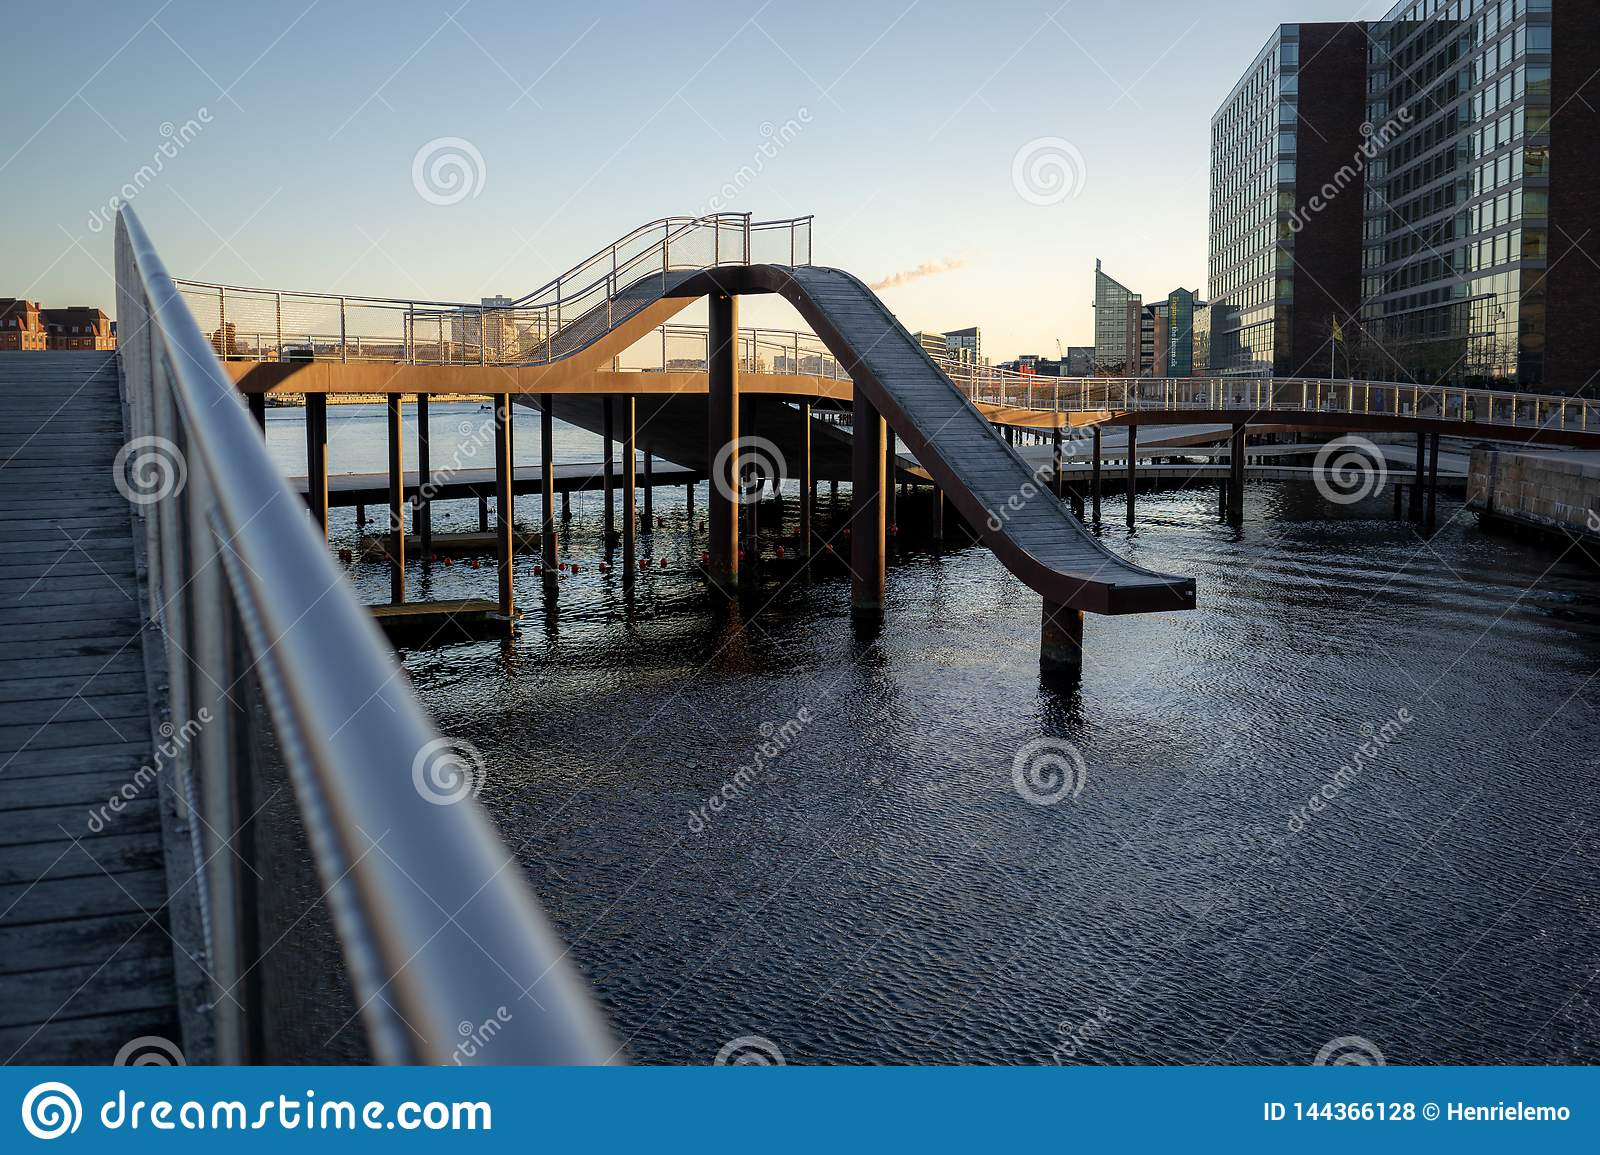 Copenhagen, Denmark - April 1, 2019: Kalvobod bridge which is a modern structure